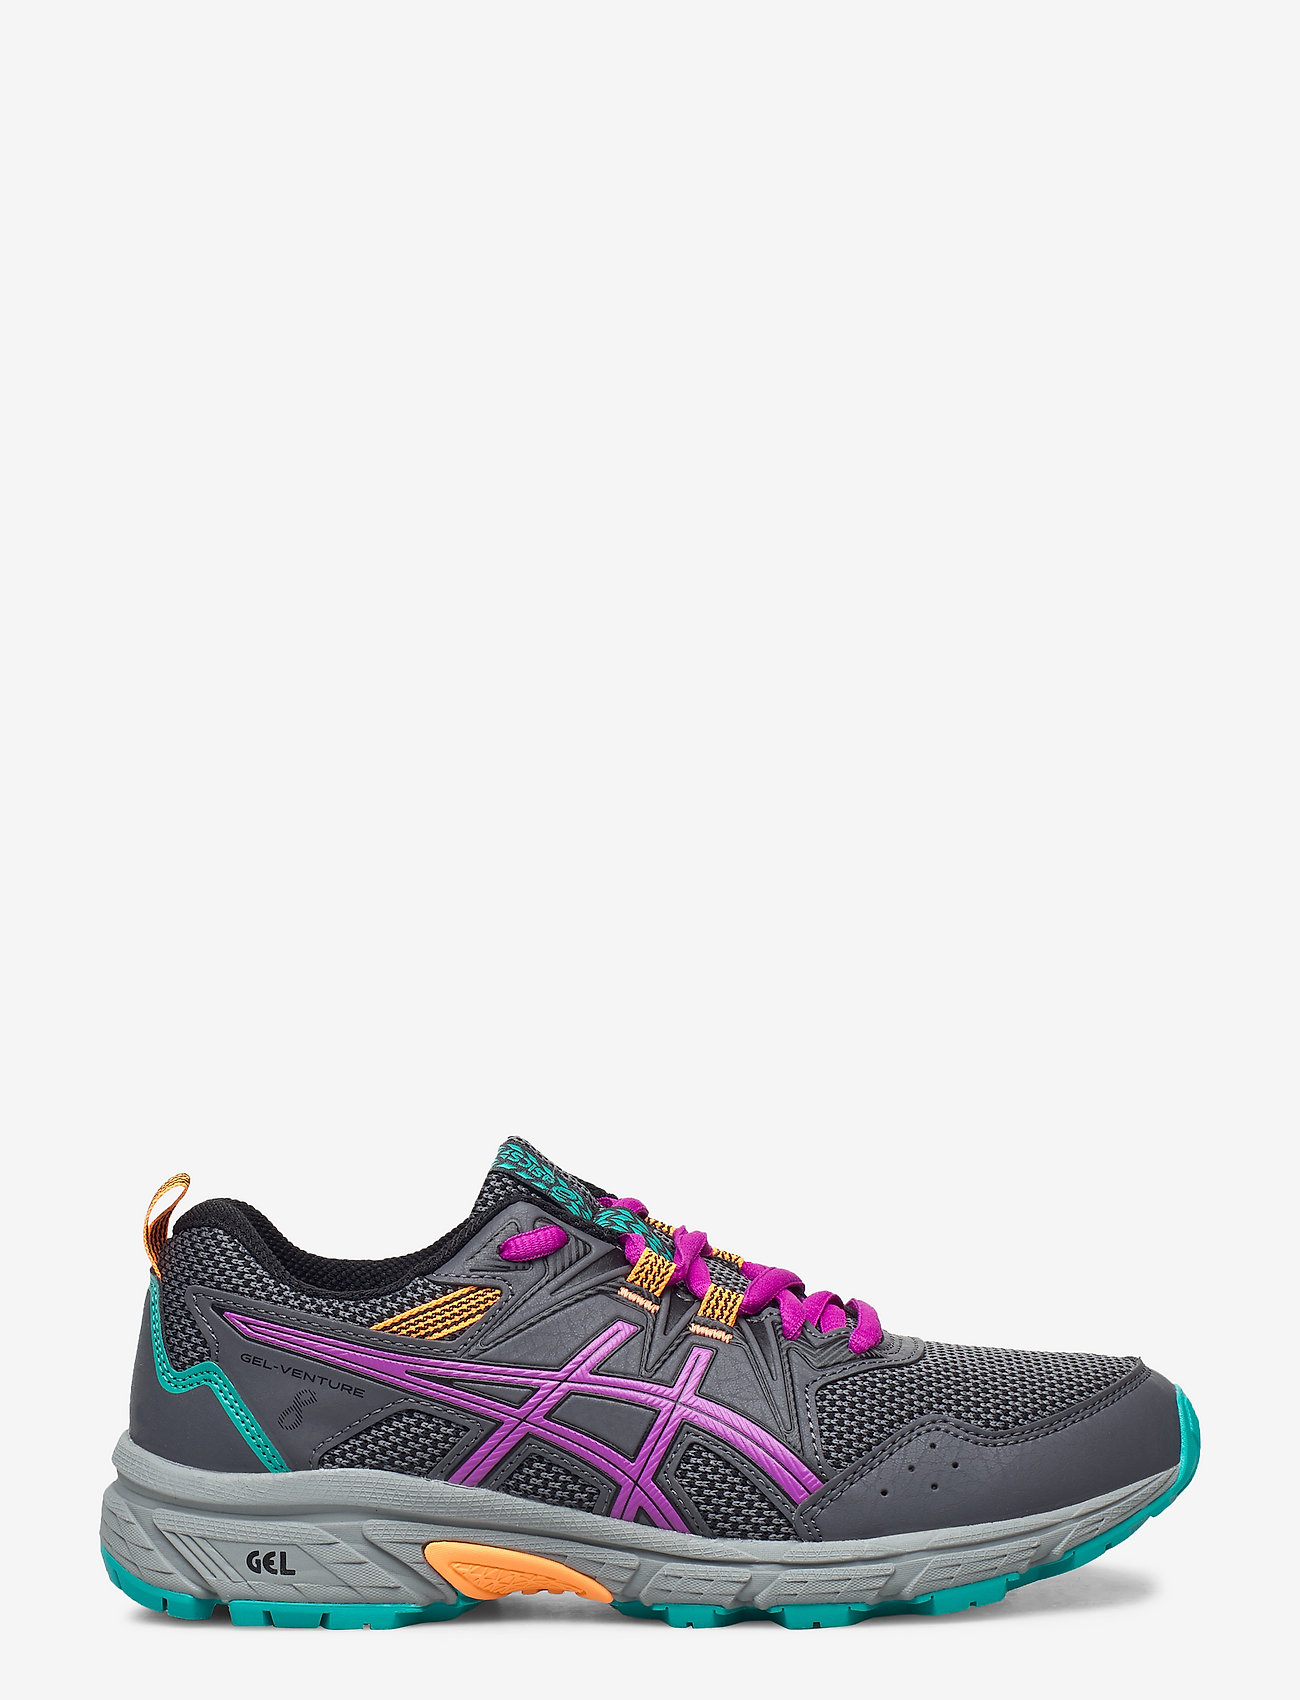 Asics - GEL-VENTURE 8 GS - trainingsschuhe - carrier grey/orchid - 1